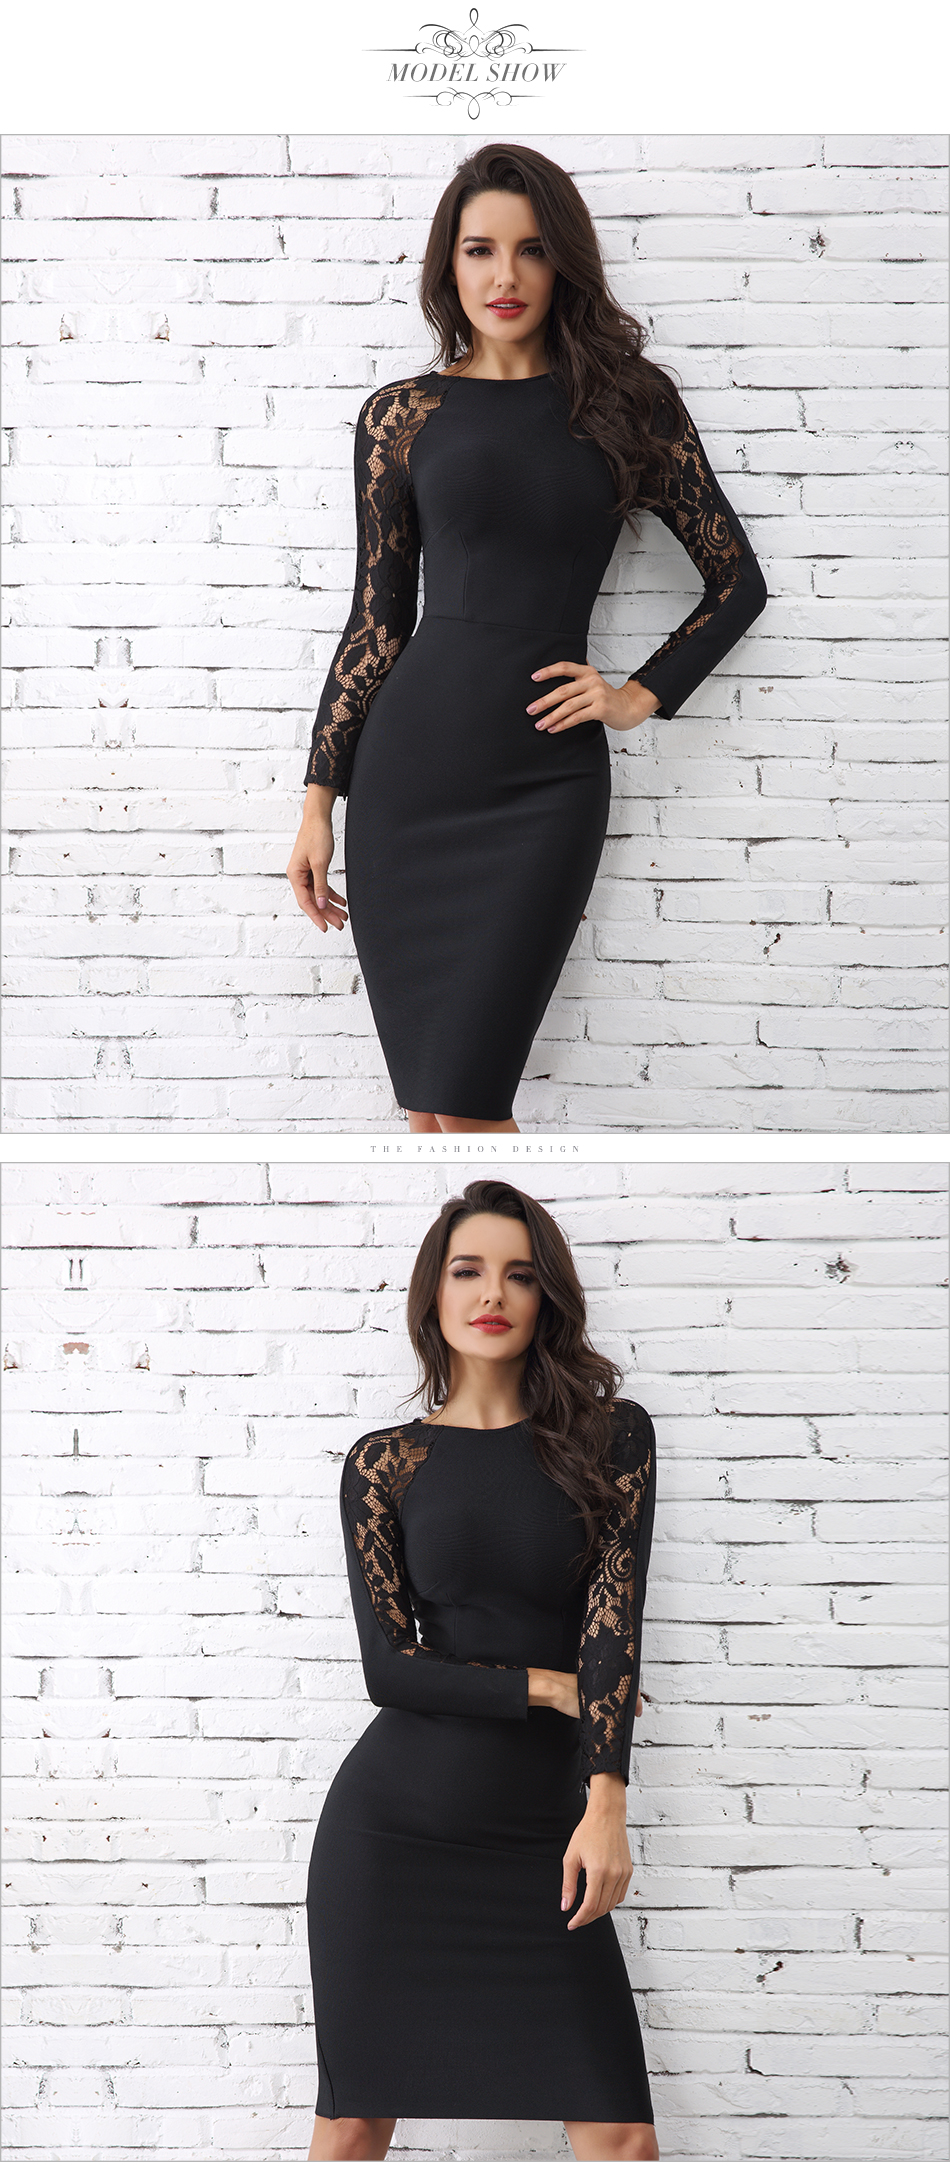 Adyce 19 Winter Elegant Lace Bandage Dress Women Black Floral Long Sleeve Hollow Out Clubwear Sexy Midi Celebrity Party Dress 5